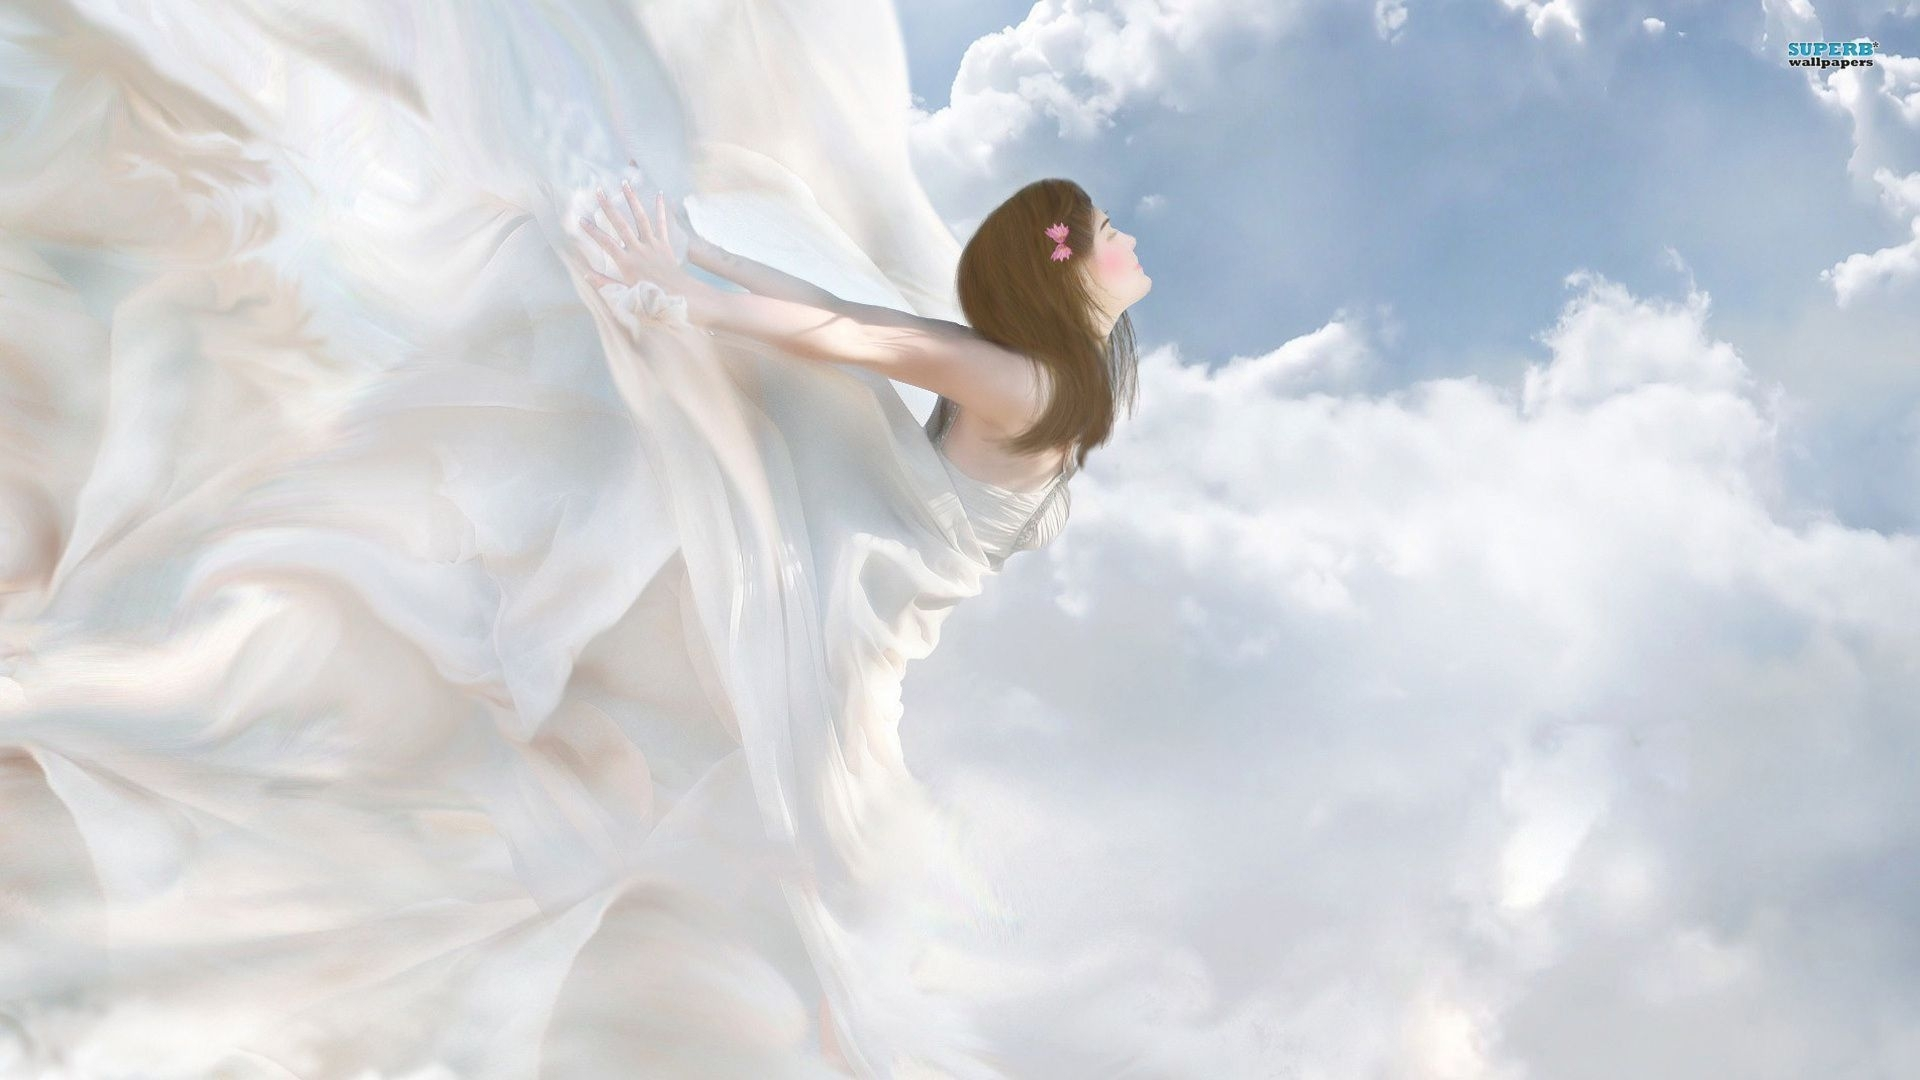 hd quality angel photos,xiao exner for desktop and mobile